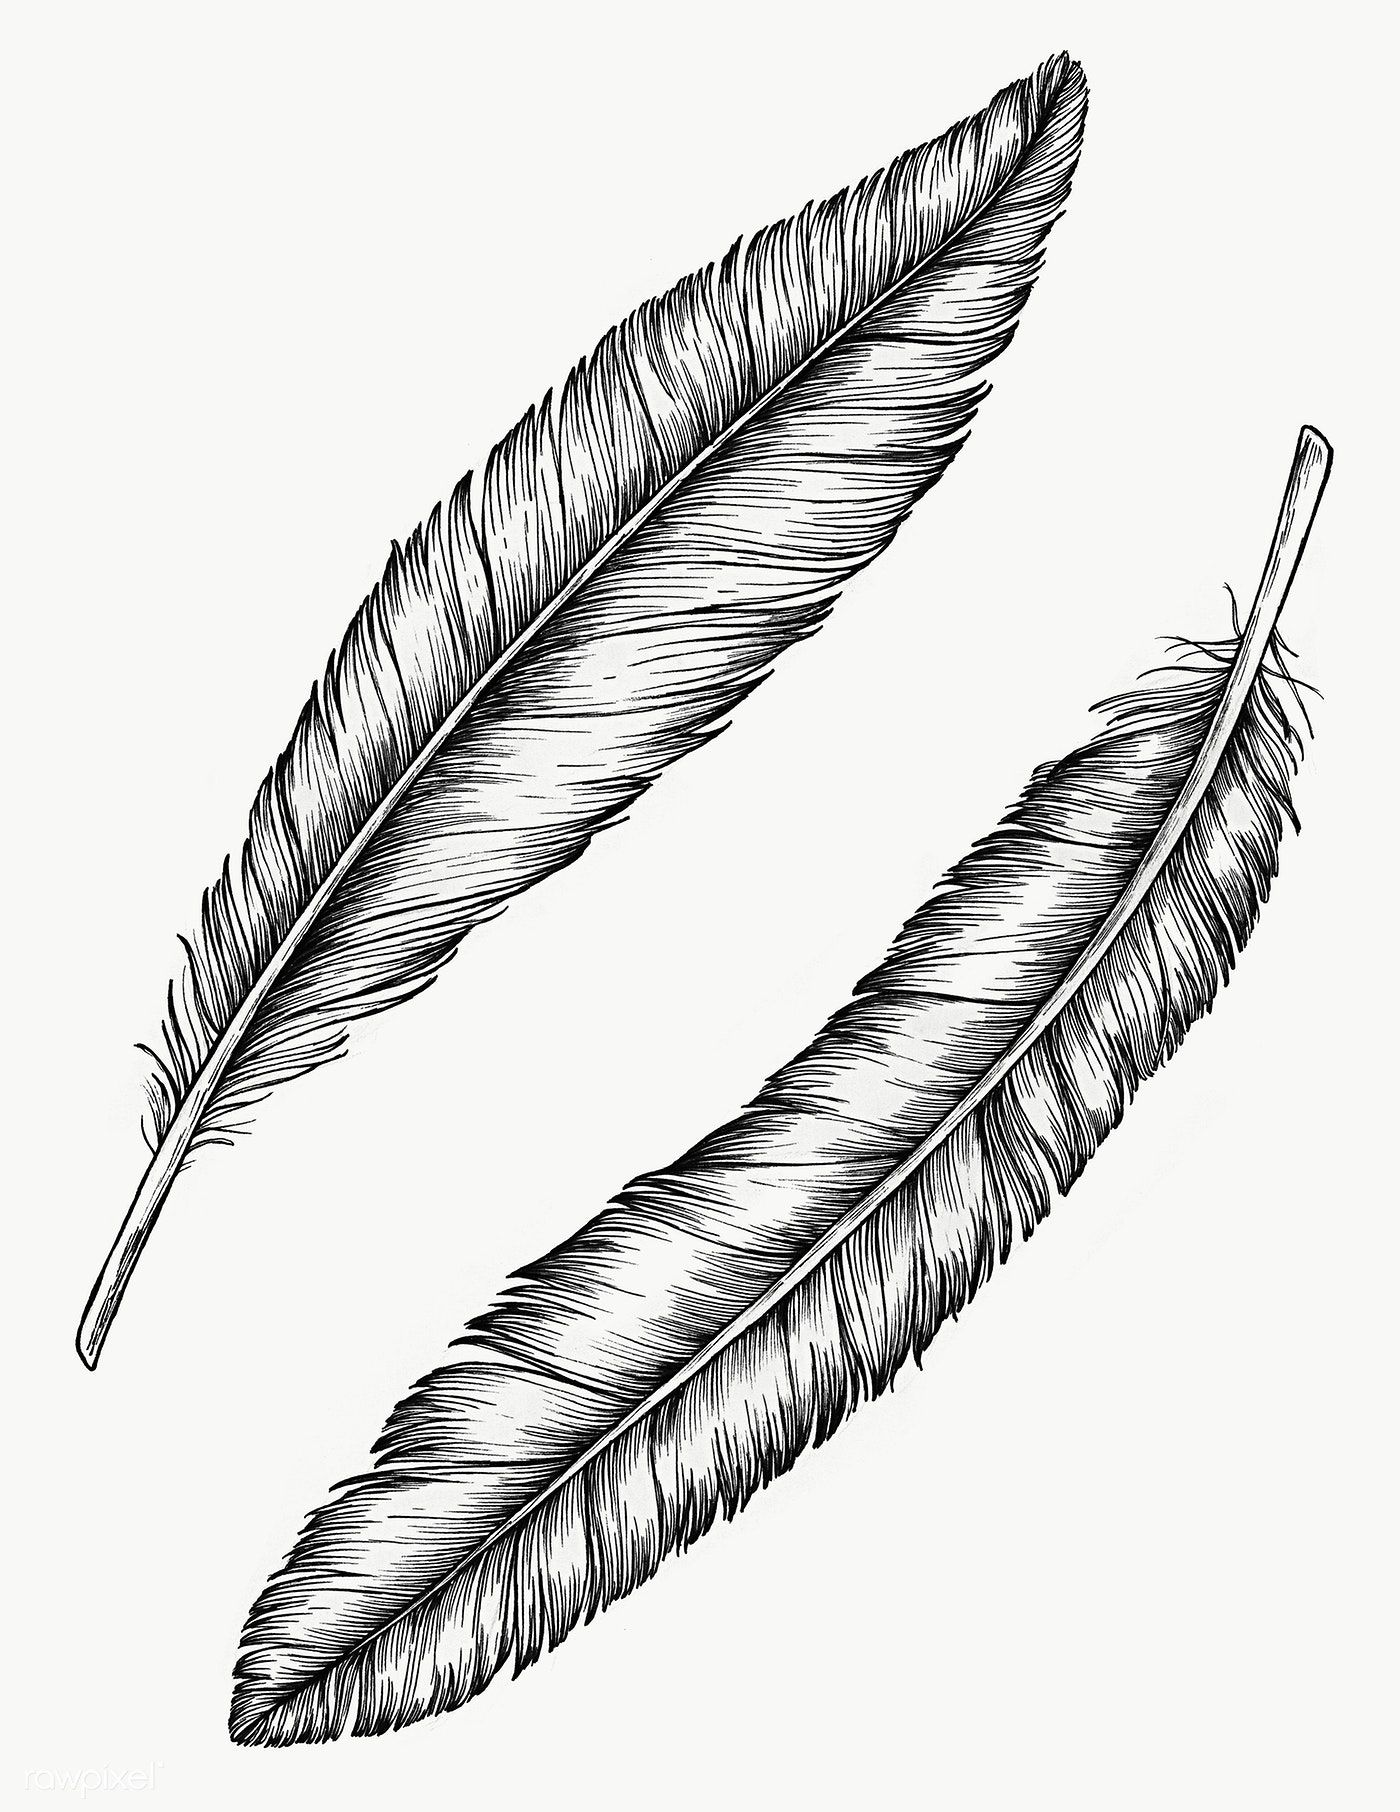 Two Hand Drawn Bird Feathers Transparent Png Free Image By Rawpixel Com How To Draw Hands Feather Drawing Feather